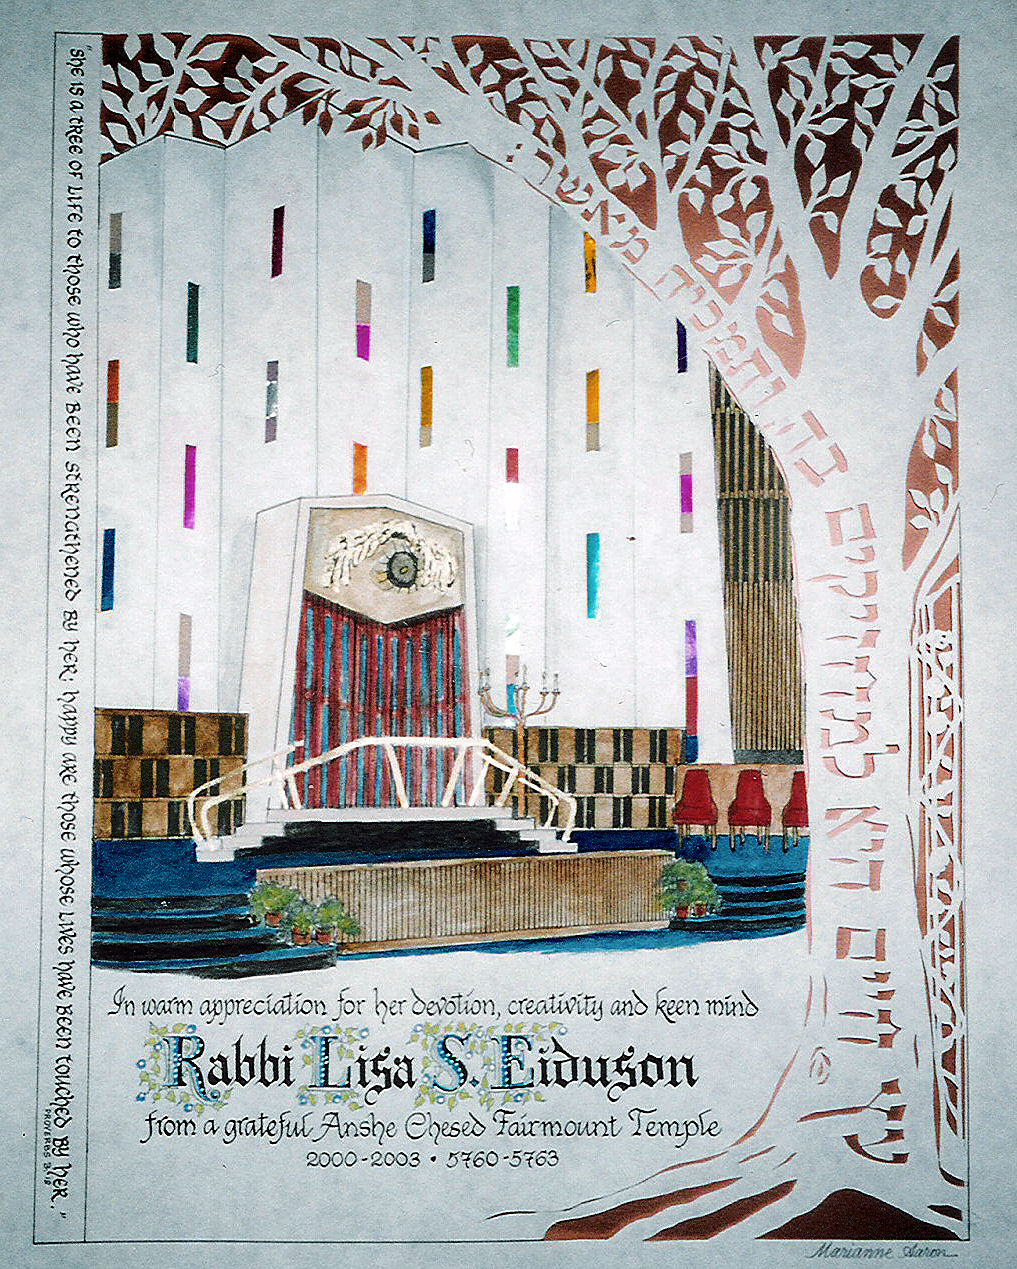 Plaque presented to Rabbi Lisa Eiduson when she moved to Boston, MA.  View is of the Bima of Fairmount Temple with cut-outs of colored stained glass windows.  Paper cut of tree with Eitz Chayim (Tree of life) signifies tree that was planted in her honor outside the window of her office.